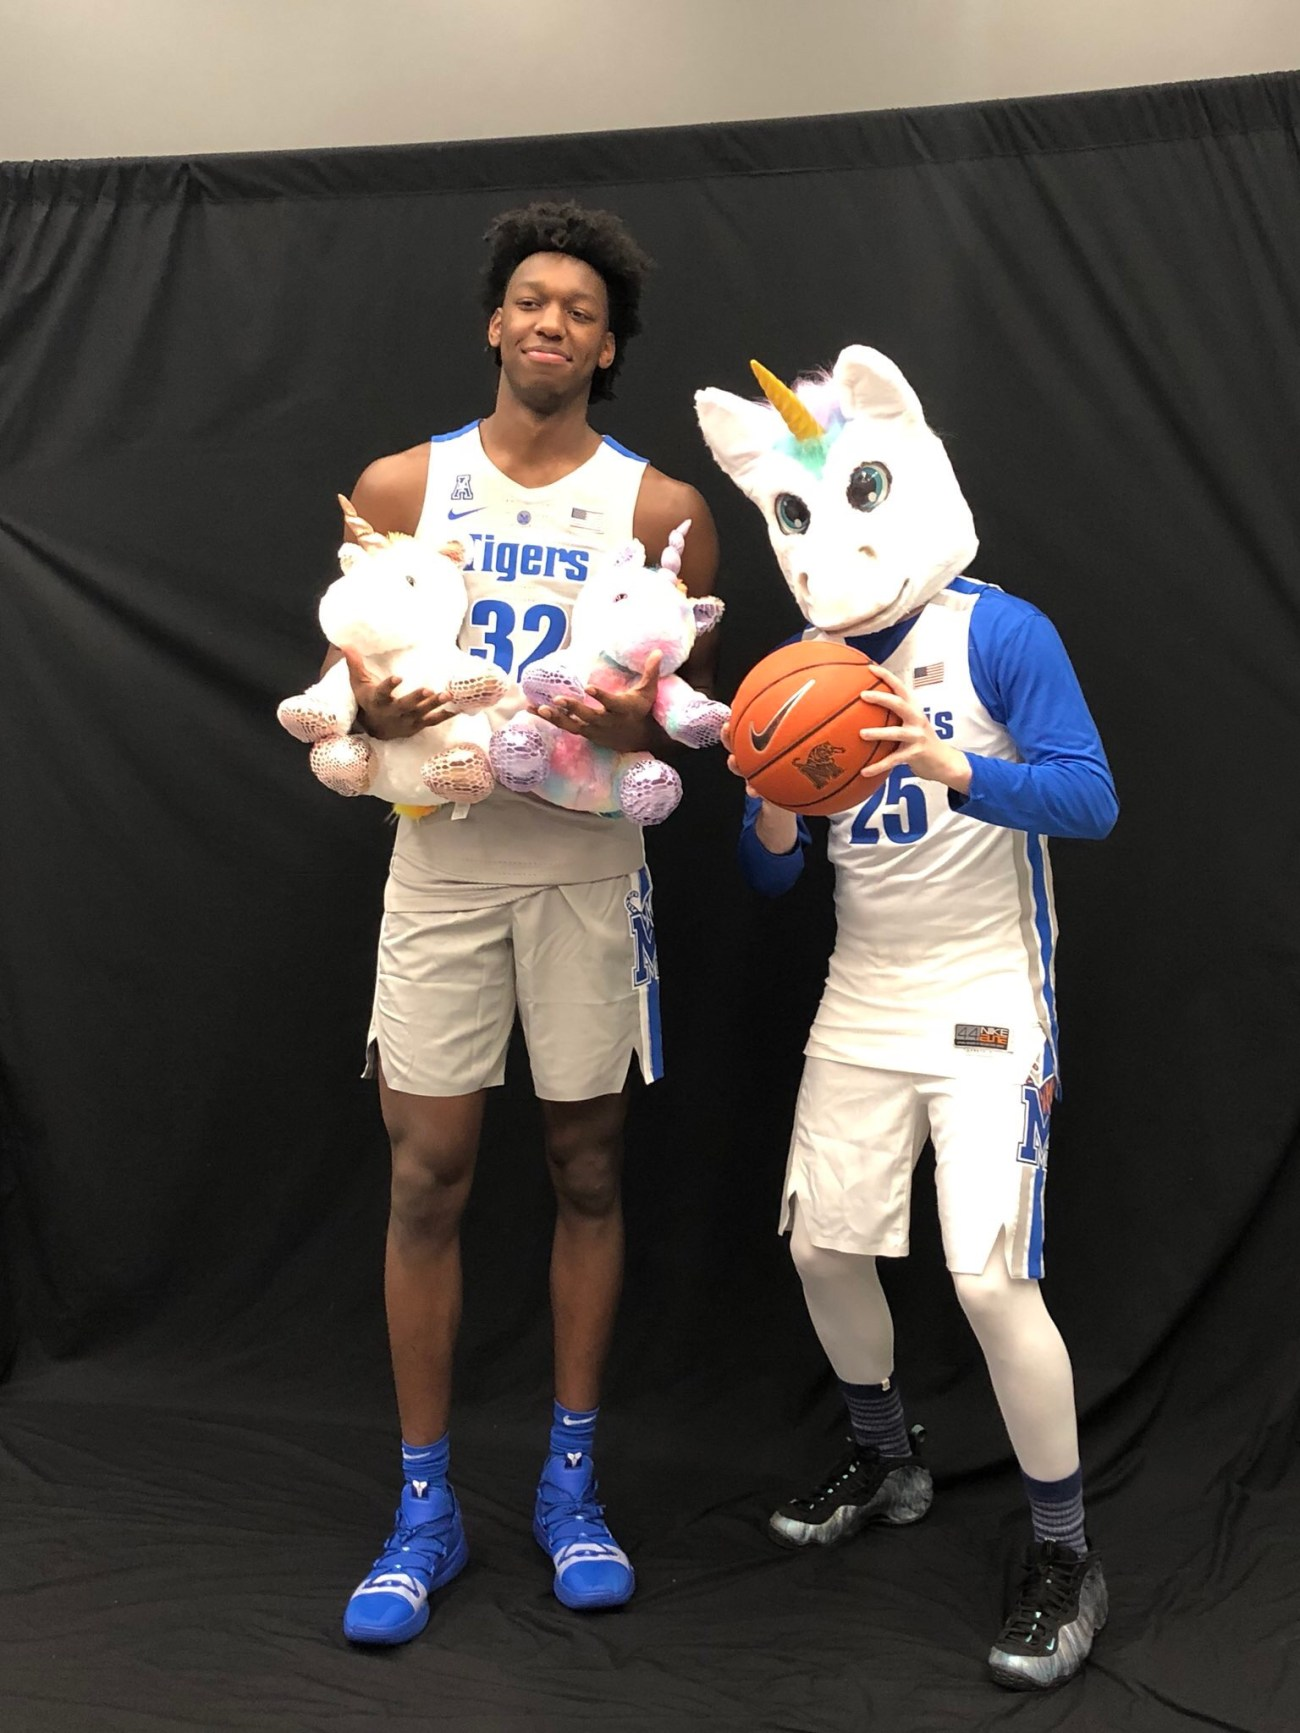 purchase cheap 692a9 52ade James Wiseman, the Nation's No. 1 Prospect, to sign with ...